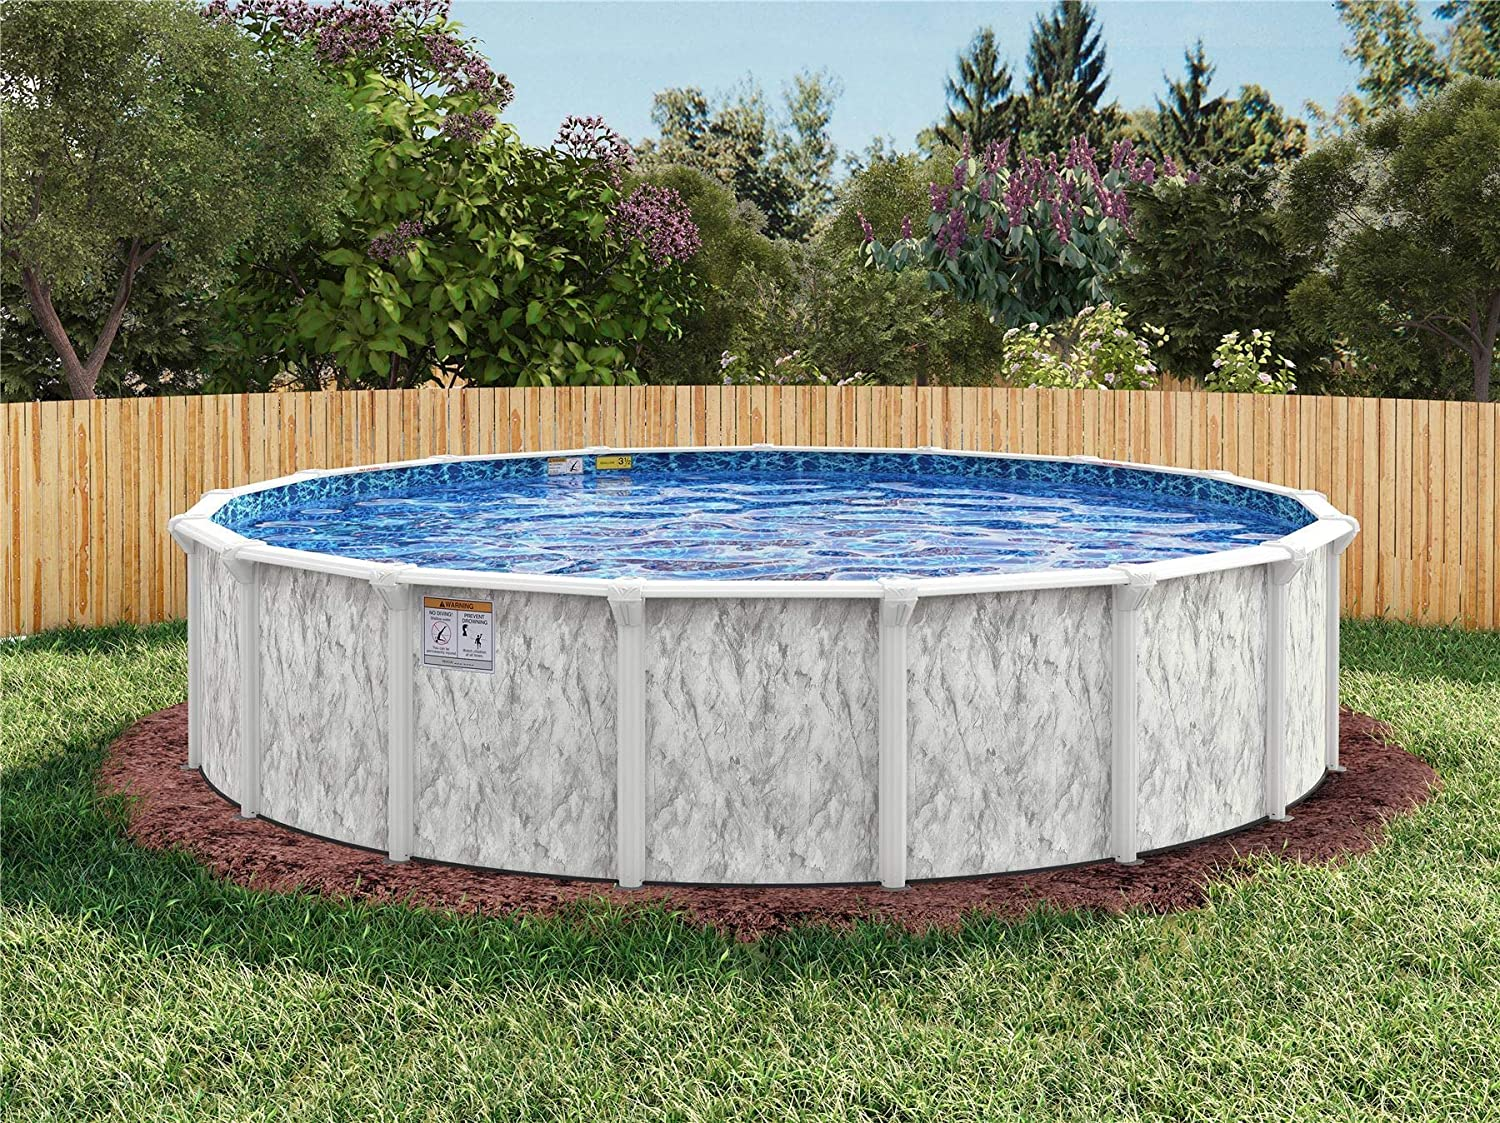 Best 12 Foot Above Ground Pool - Perfect for Home